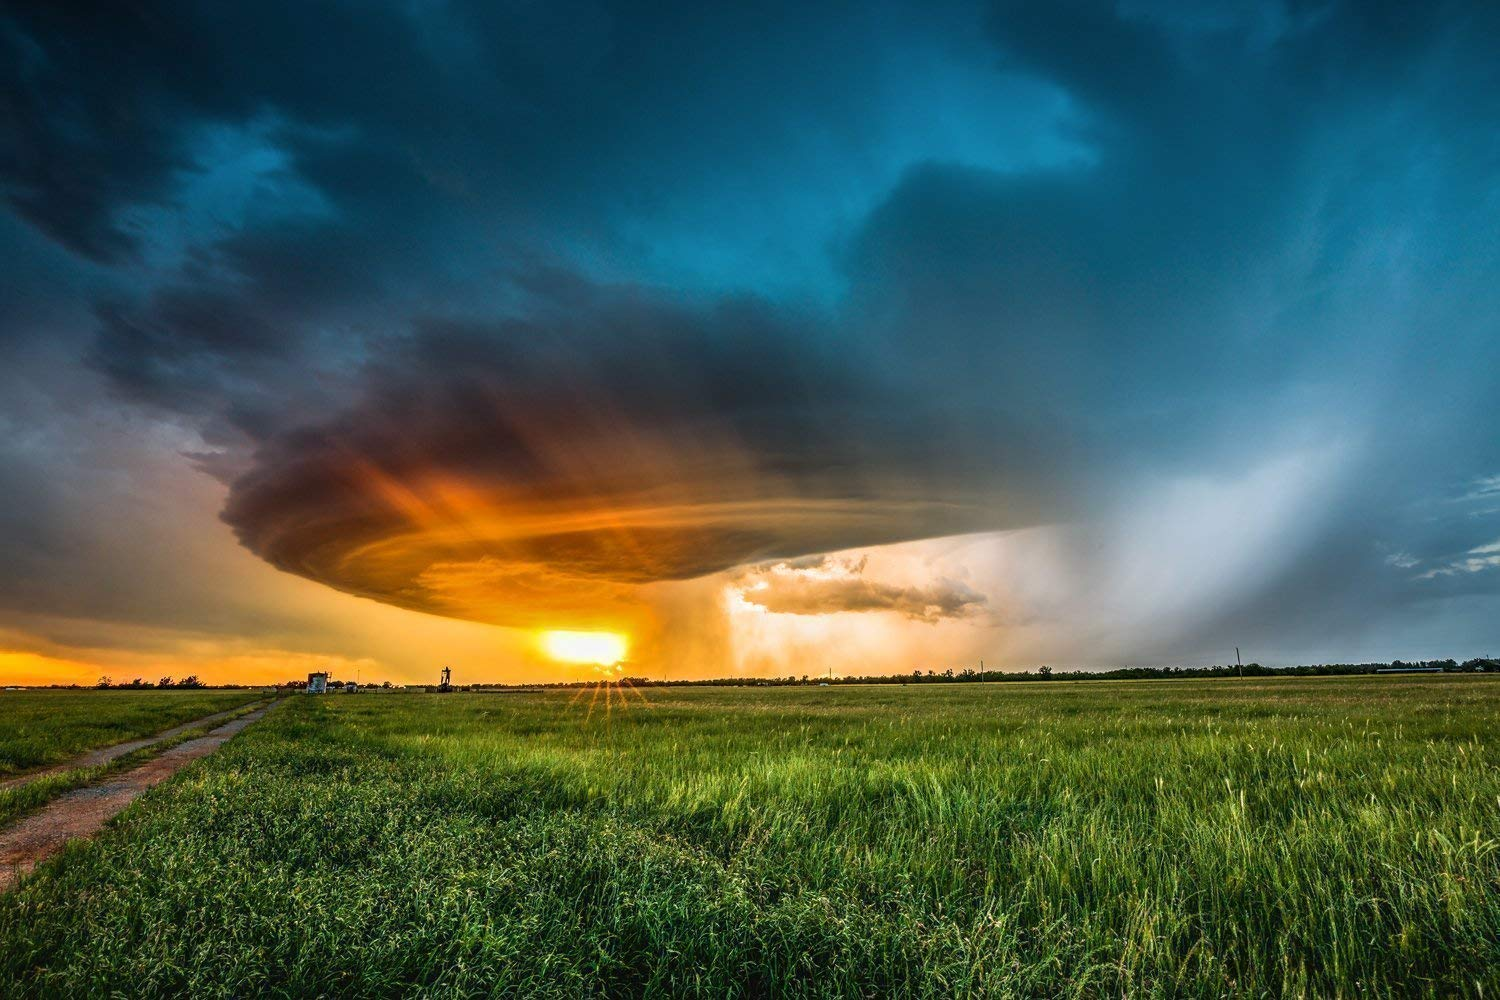 Oklahoma Thunderstorm Wall Art Print - Amazing Storm on the Southern Plains Weather Artwork Decor for Home Decoration 5x7 to 30x45